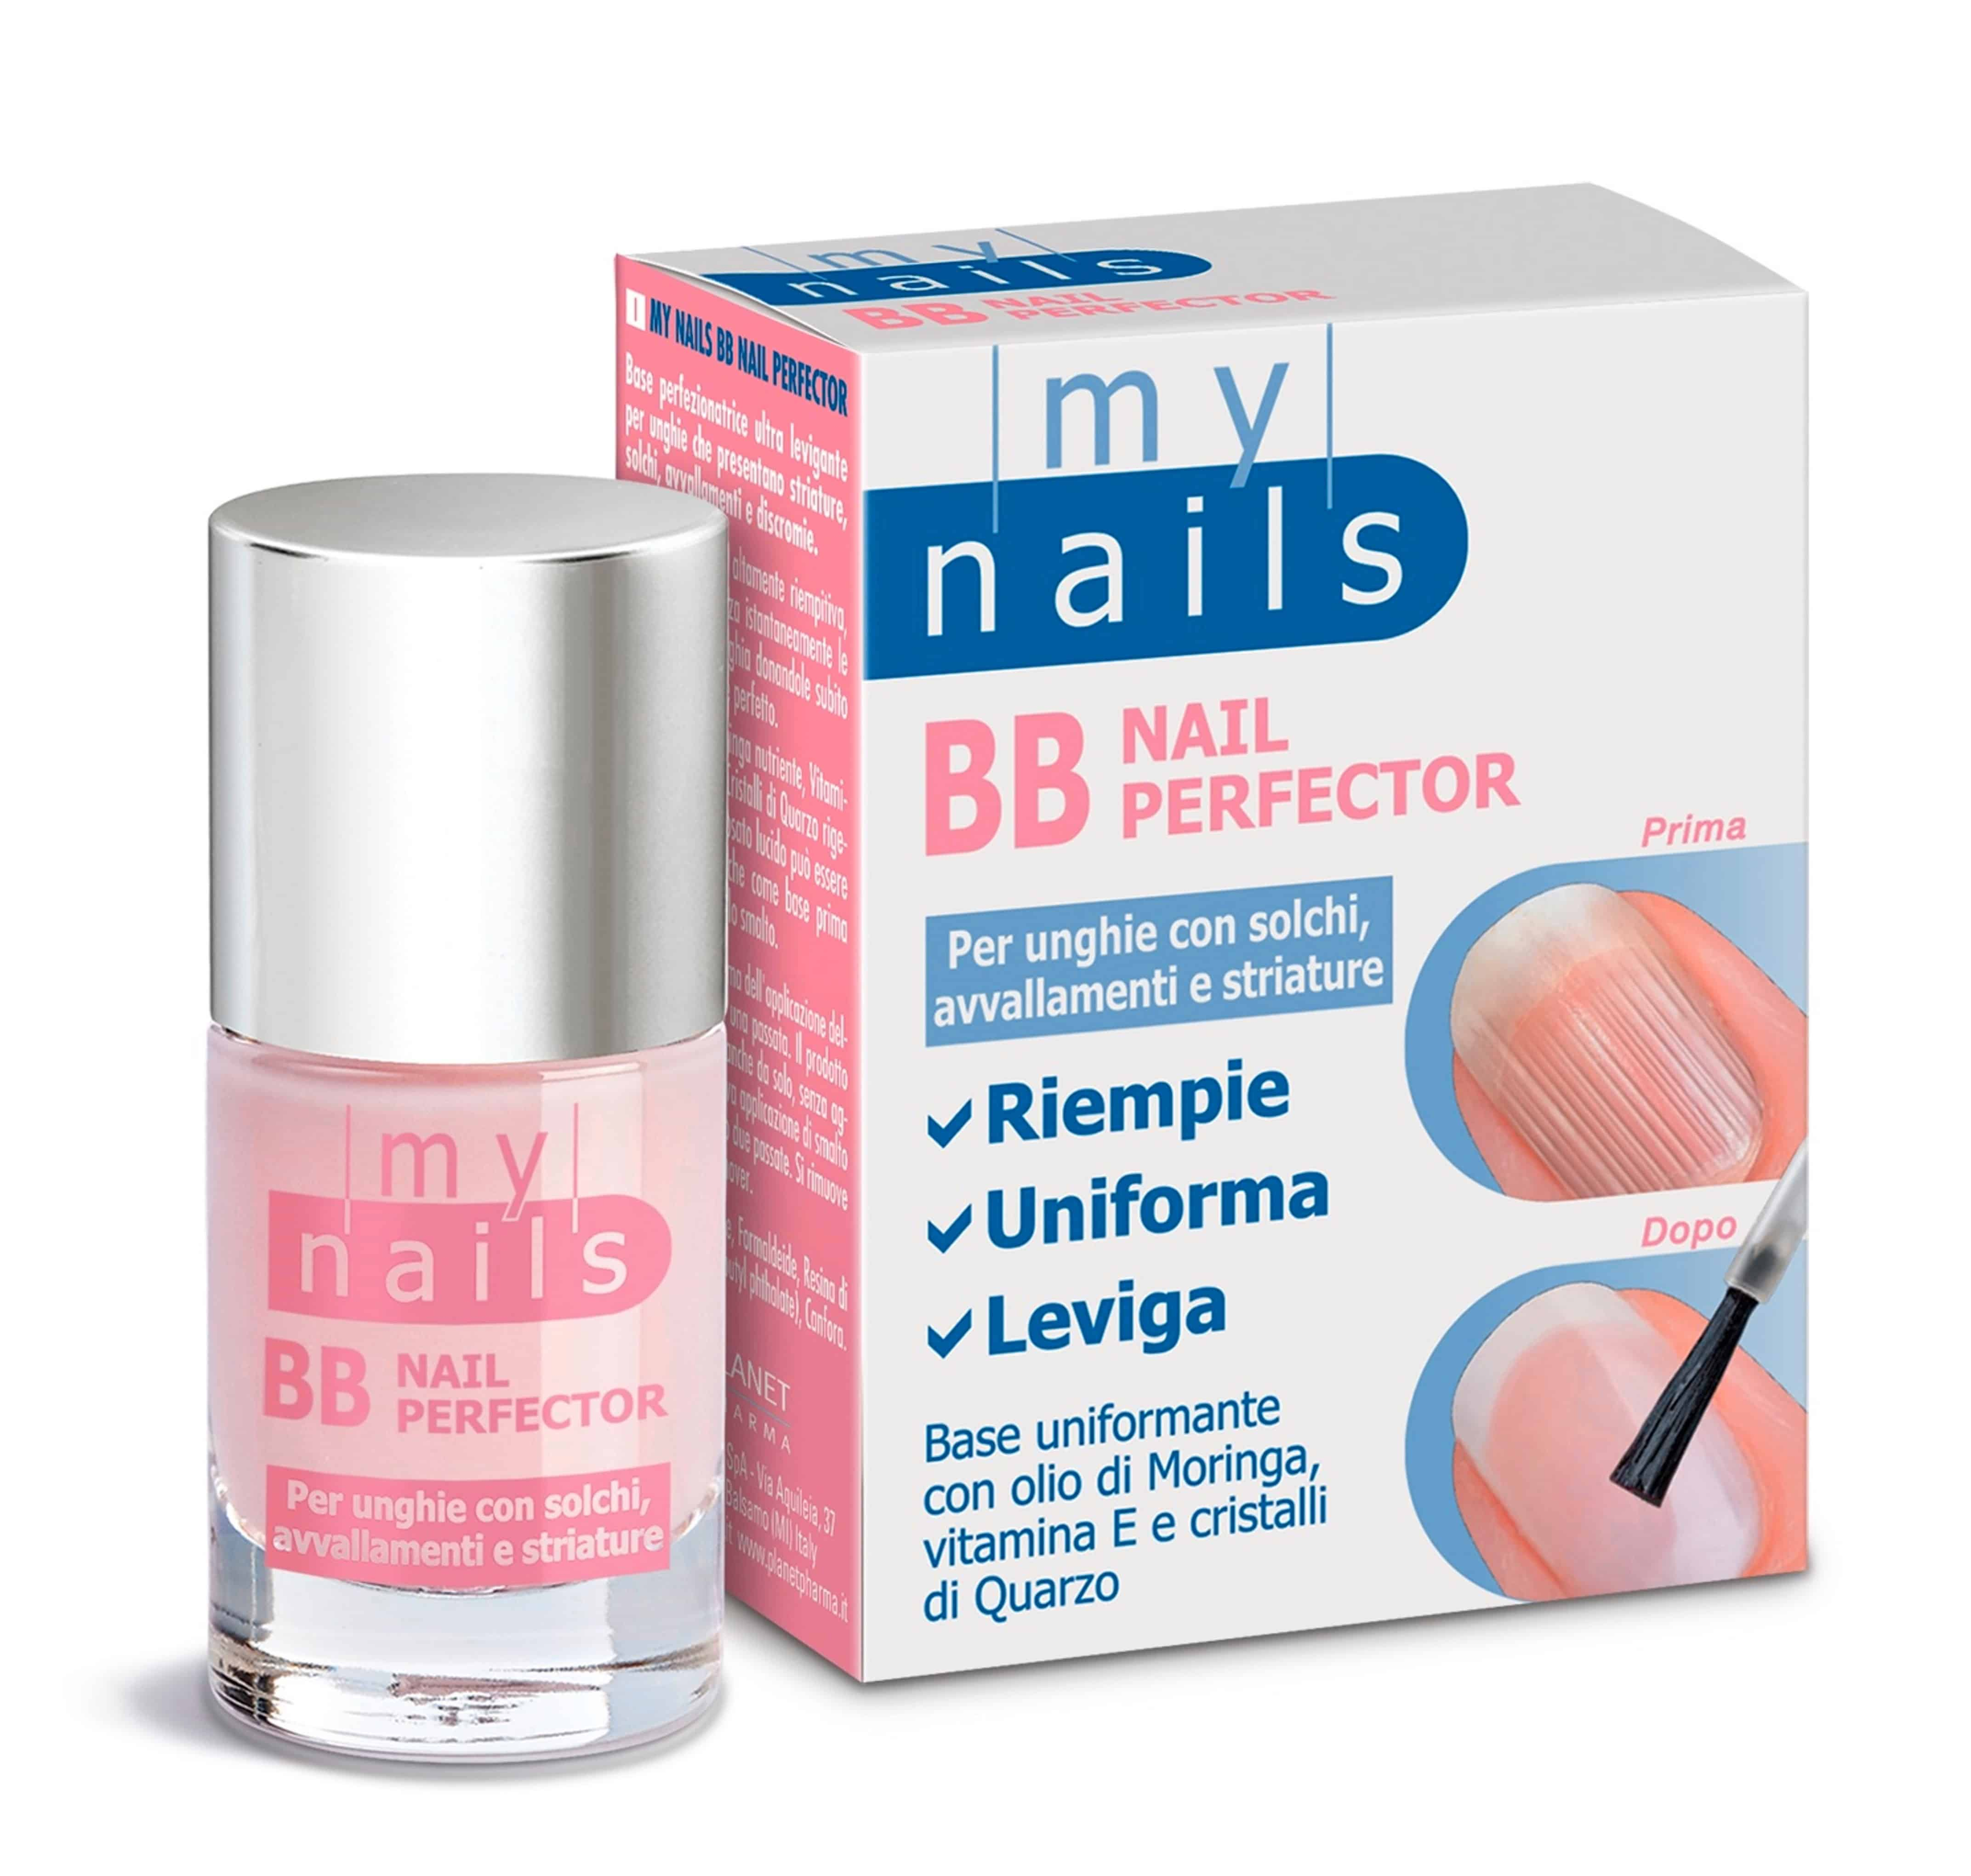 BB NAIL PERFECTOR MY NAILS